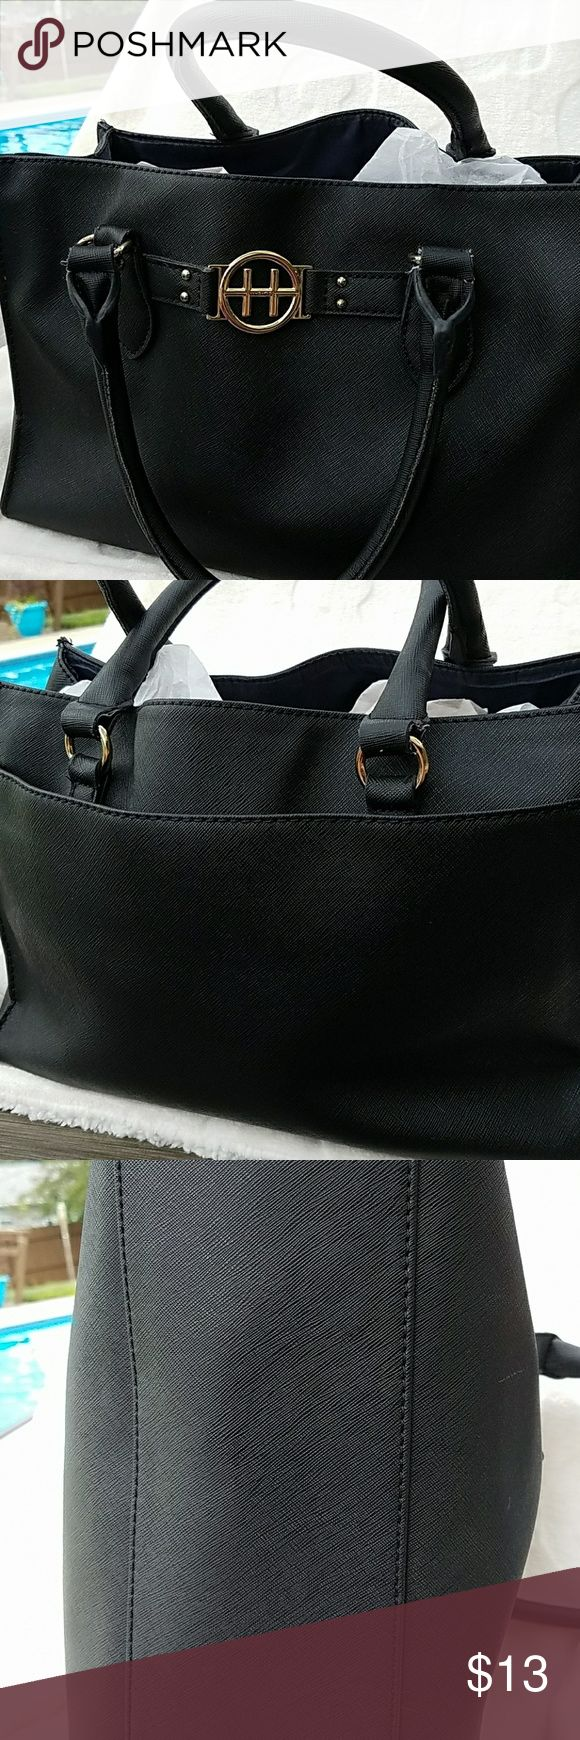 Tommy Hilfiger Black Tote Tommy Hilfiger Tote bag in black, with much sought after inside middle full length zipper pocket, 1 large inside pocket, zipper inside pocket. Used, but great condition, no stains, no tears, clean. From my own personal closet clean out. Tommy Hilfiger Bags Totes